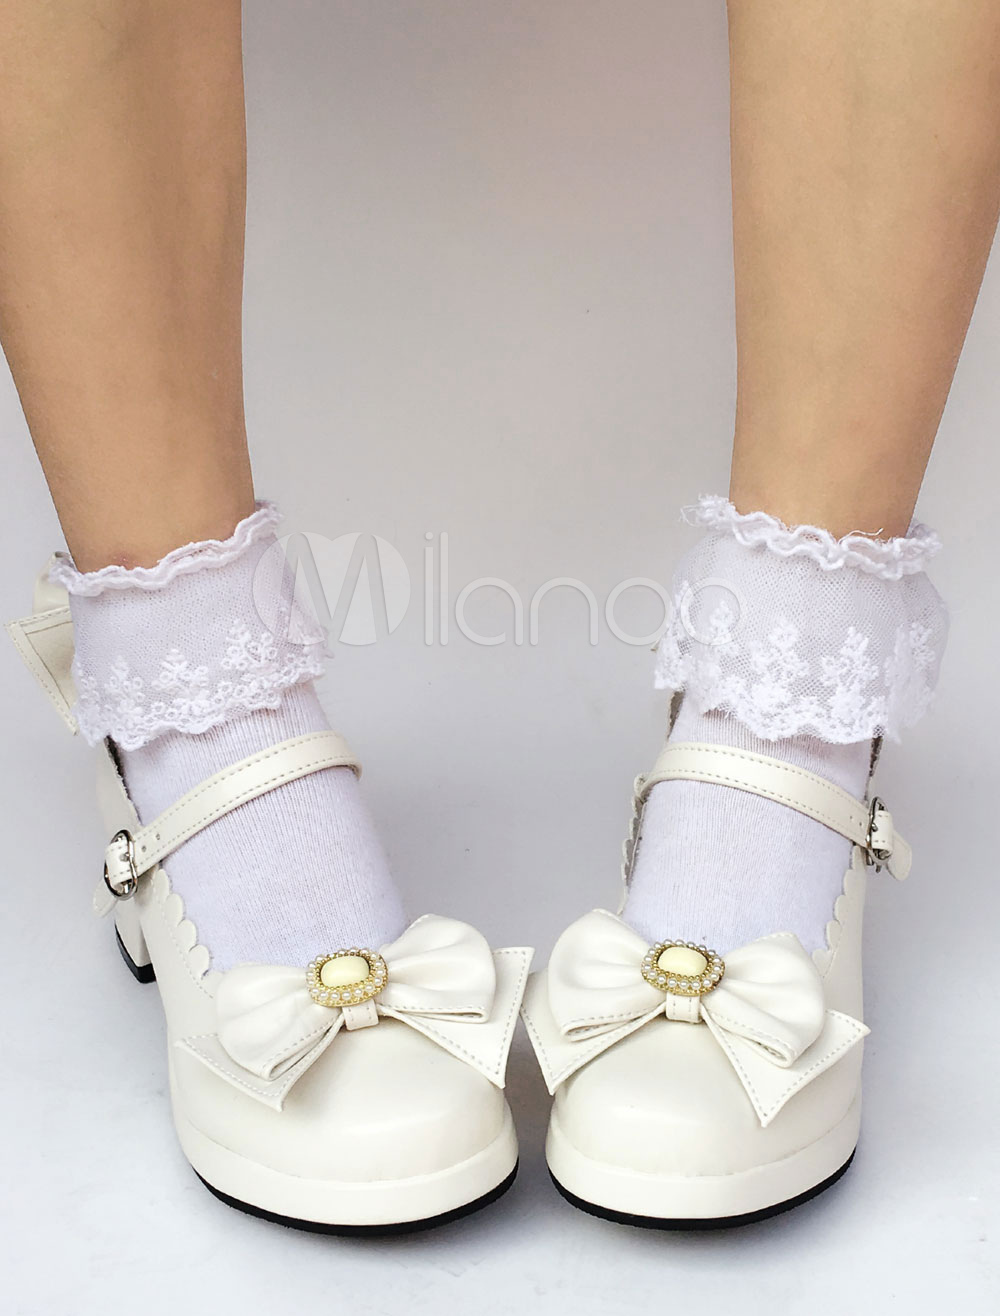 Buy Sweet Lolita Shoes White Bow Round Toe Lolita Pumps for $68.39 in Milanoo store